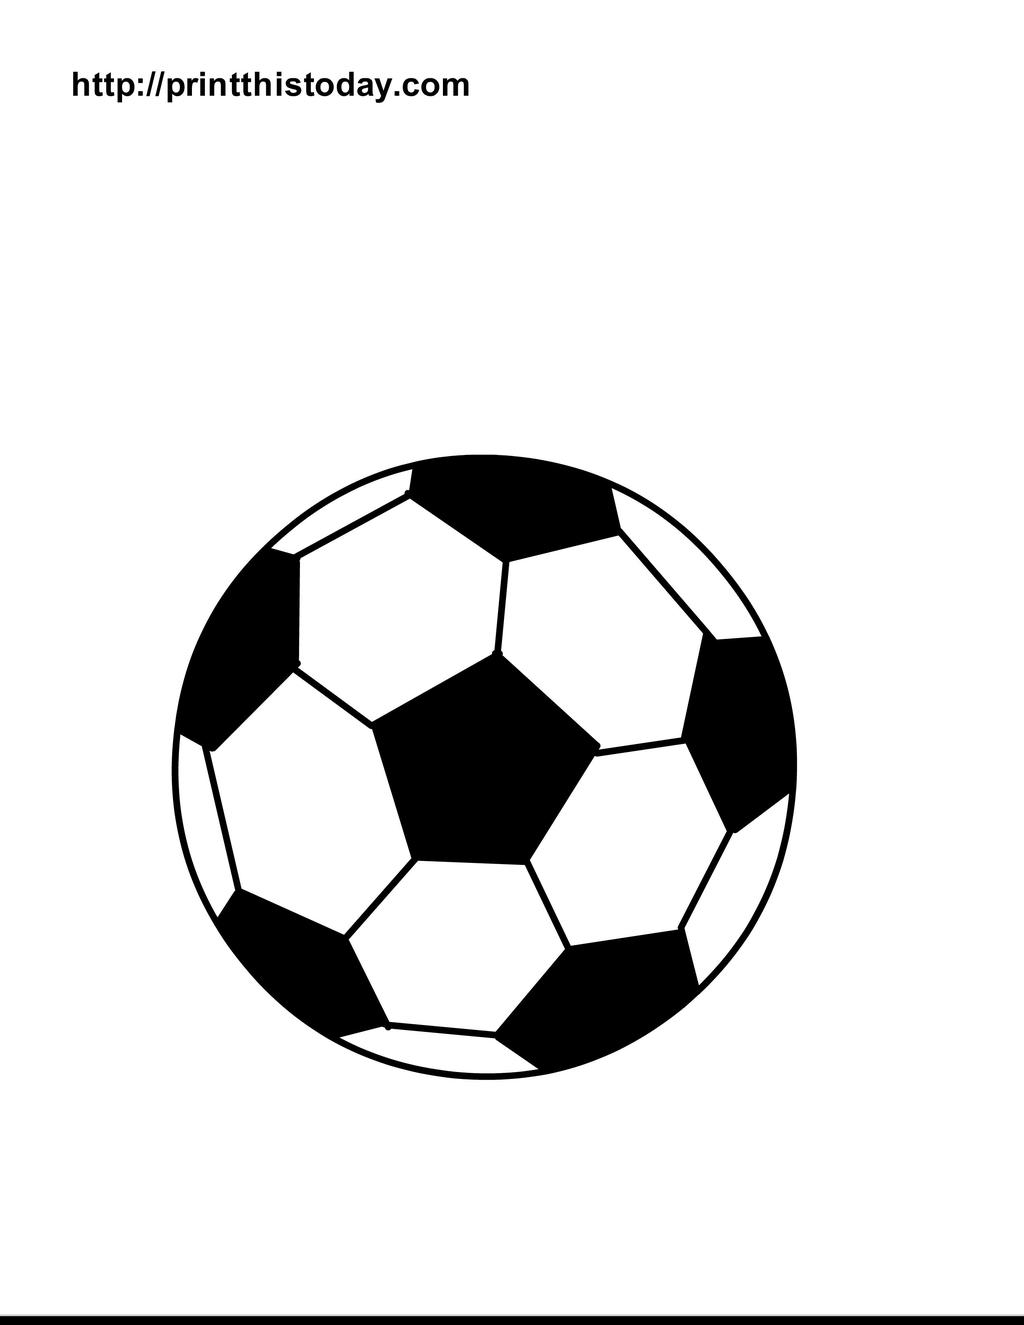 Blank Soccer Ball Coloring Pages Sports Lineart Free Printable